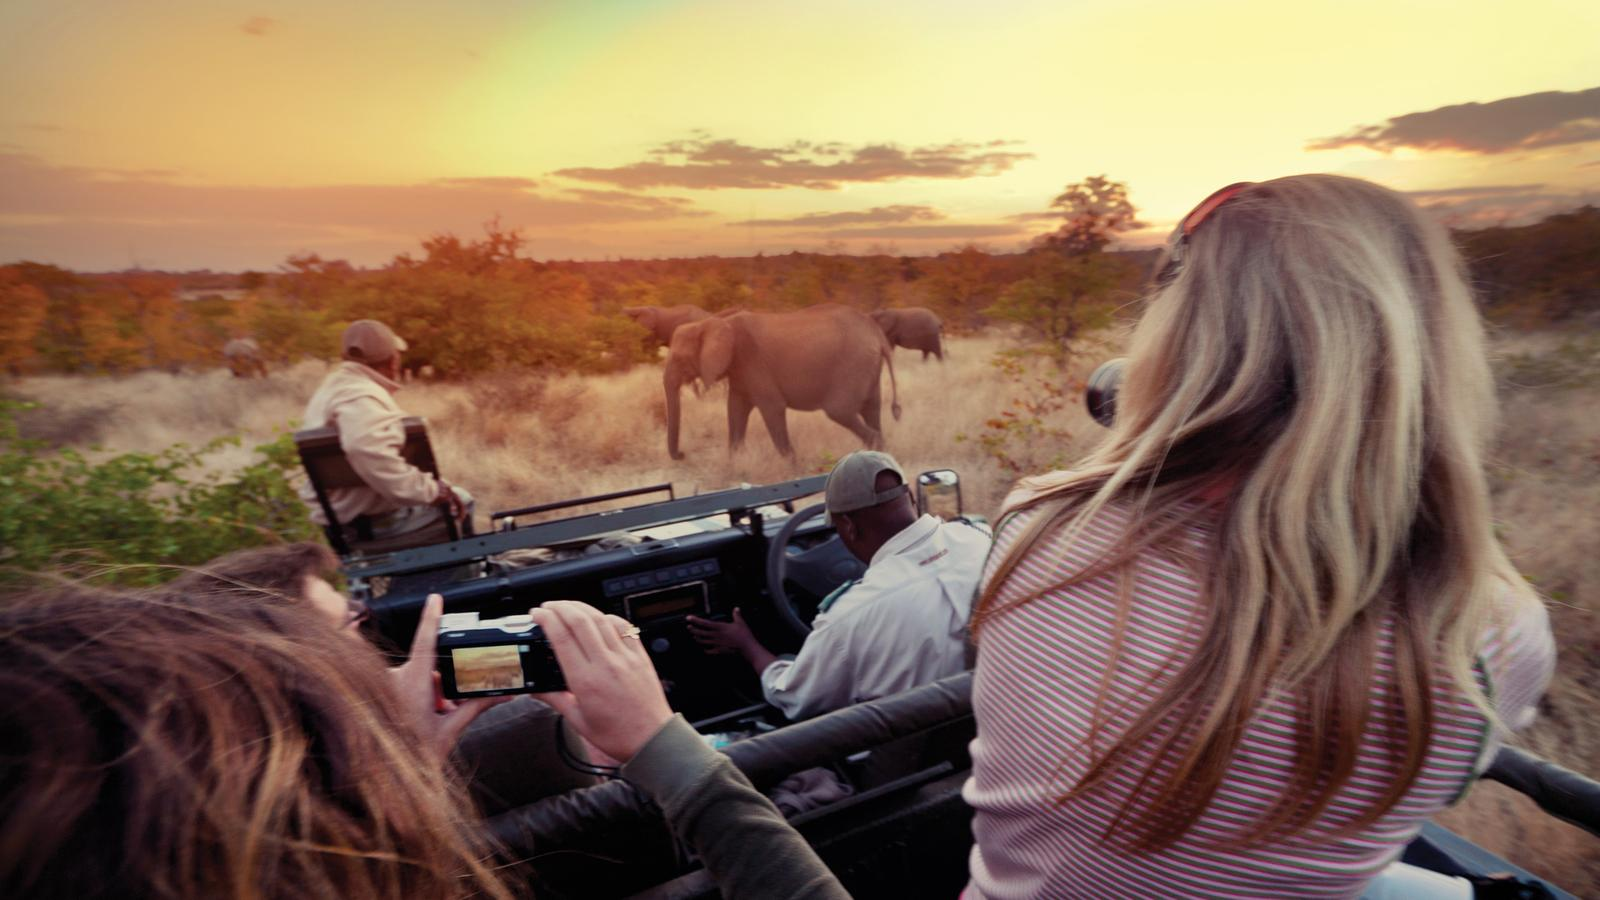 National Geographic Tours Africa >> Explore Kruger National Park in South Africa, Africa - G Adventures